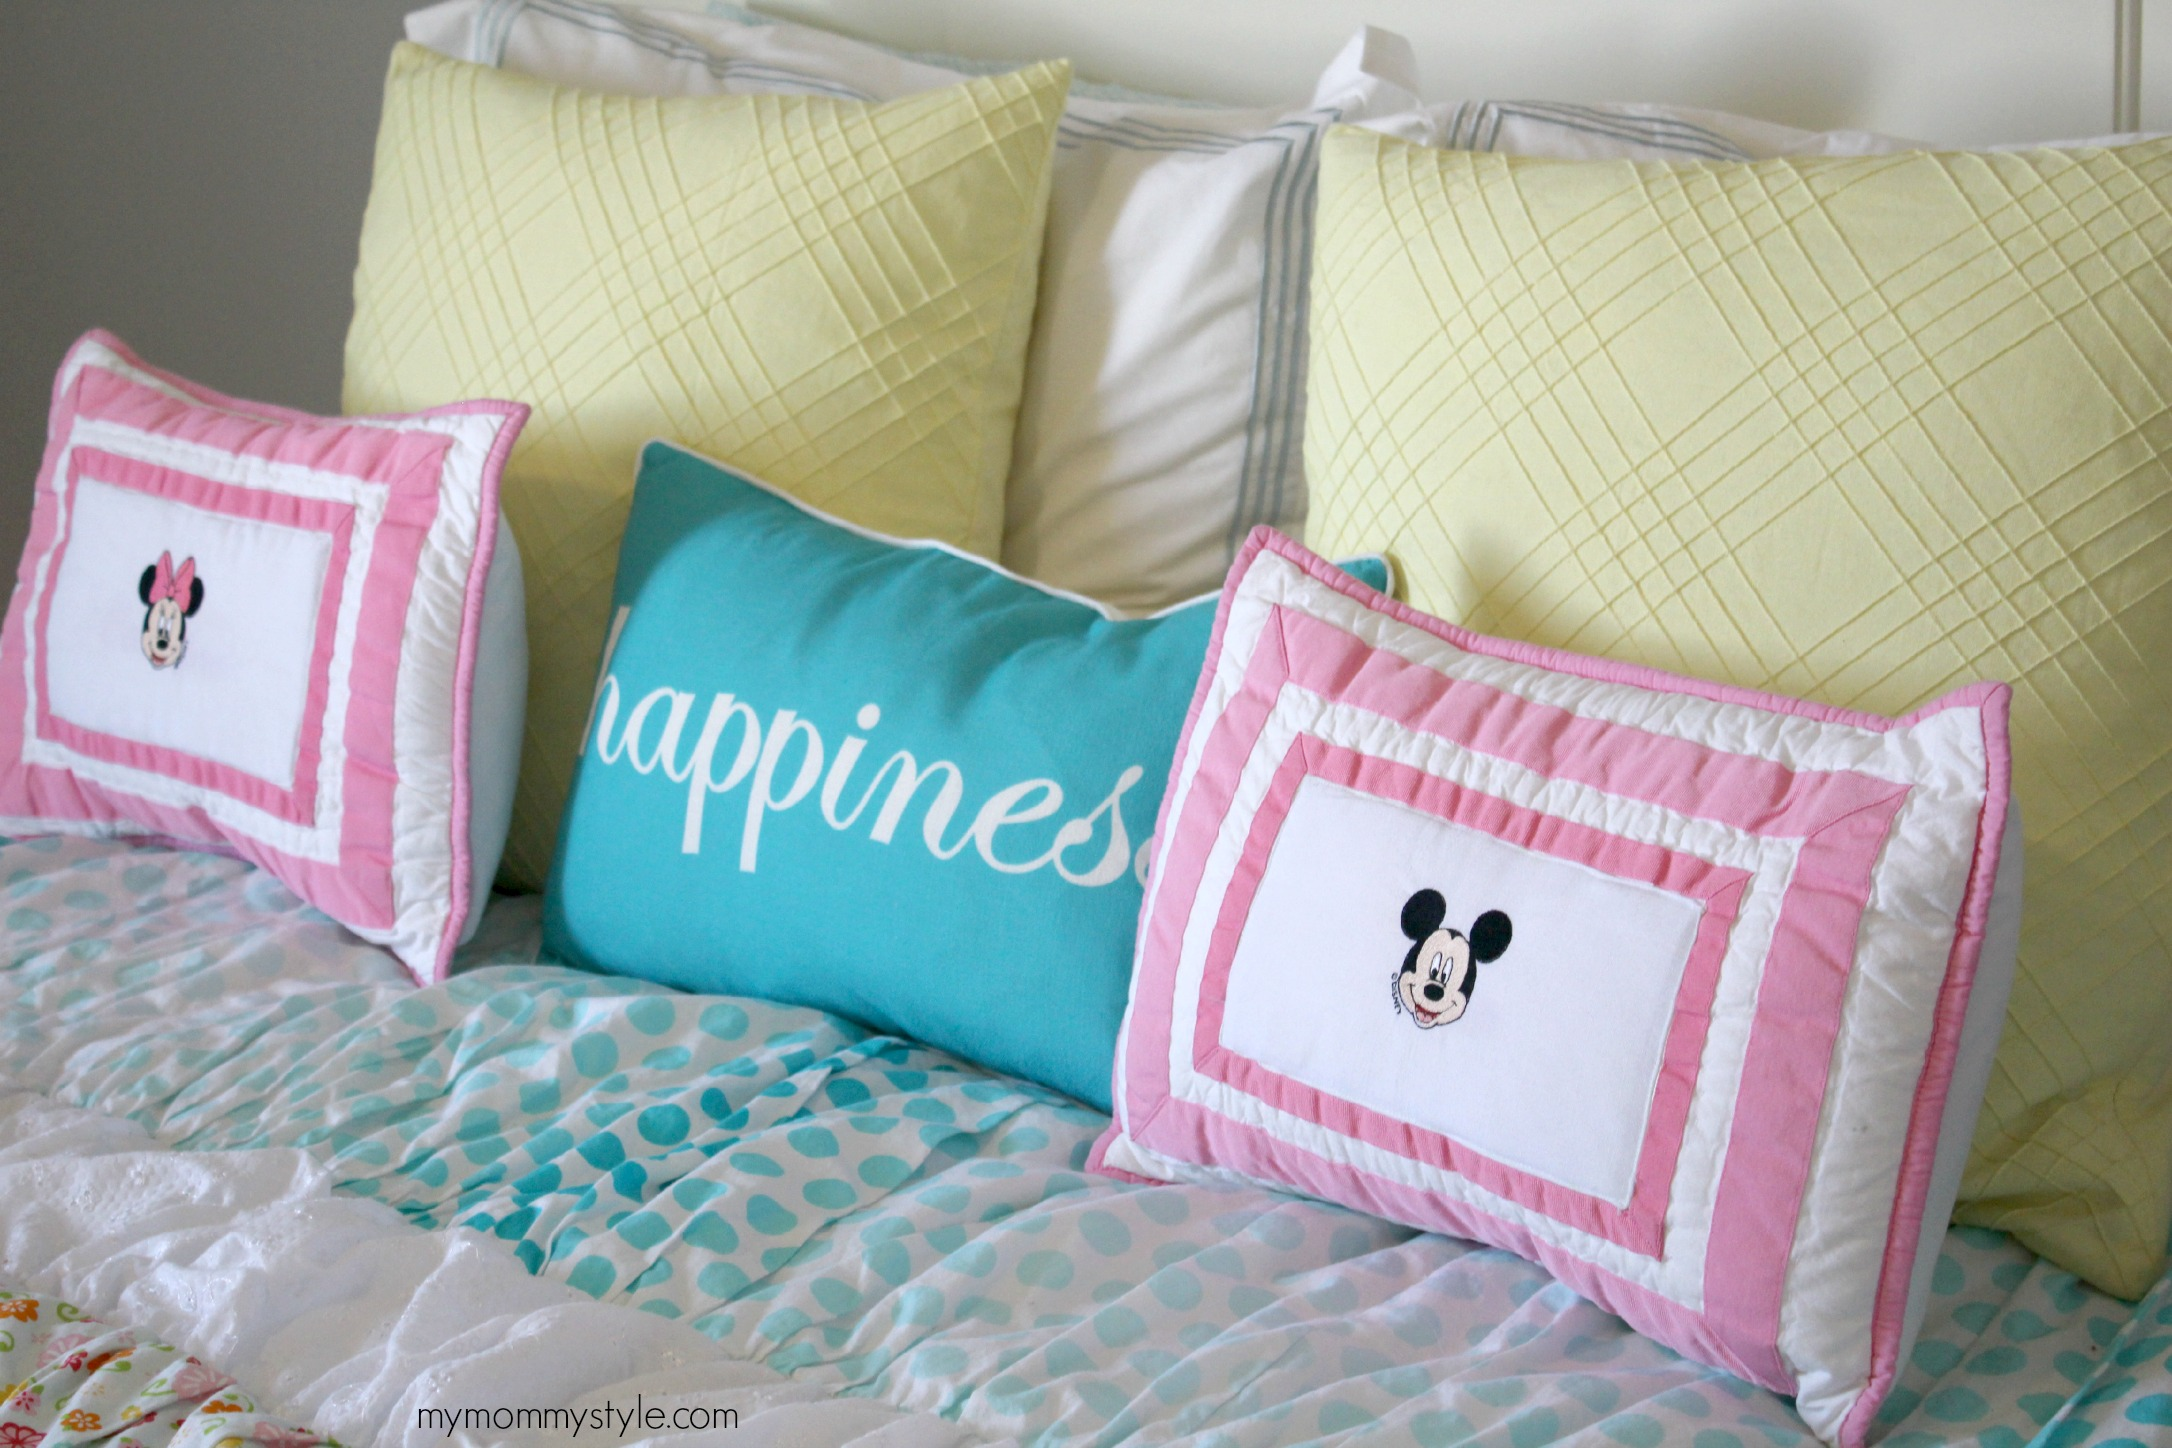 Minnie and Mickey Mouse, Mymommystyle.com